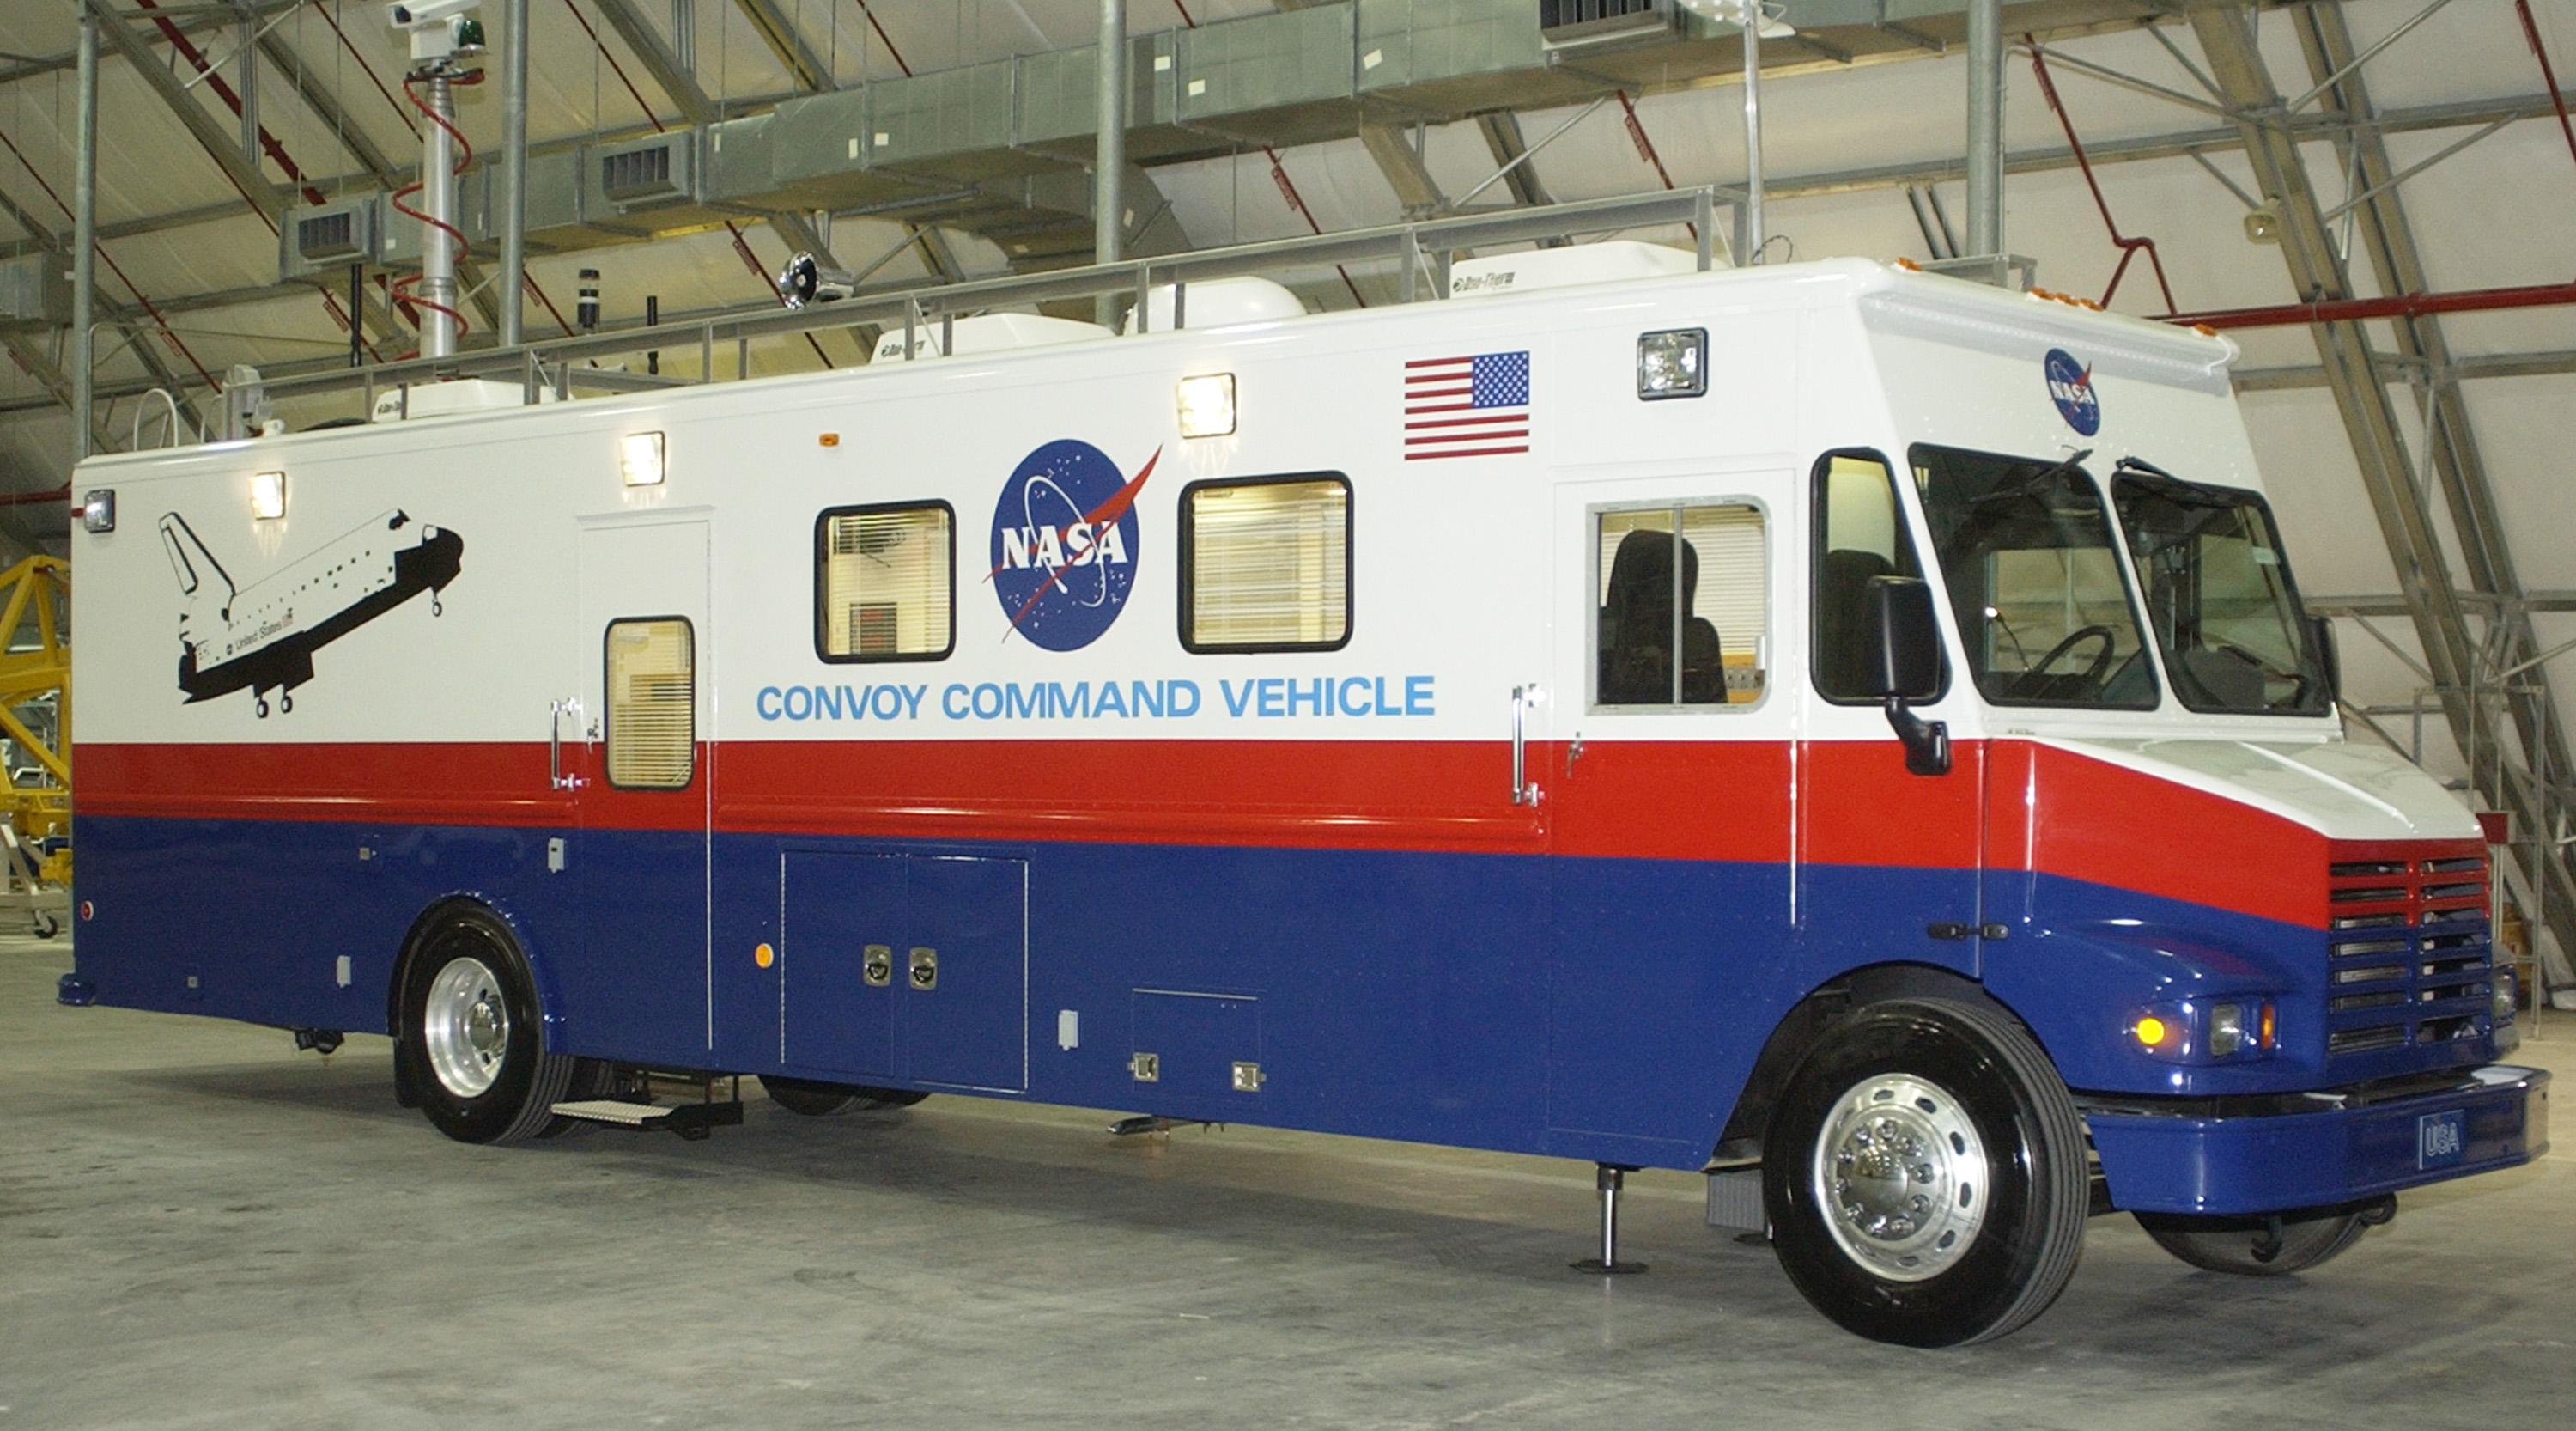 nasa truck side view - photo #19